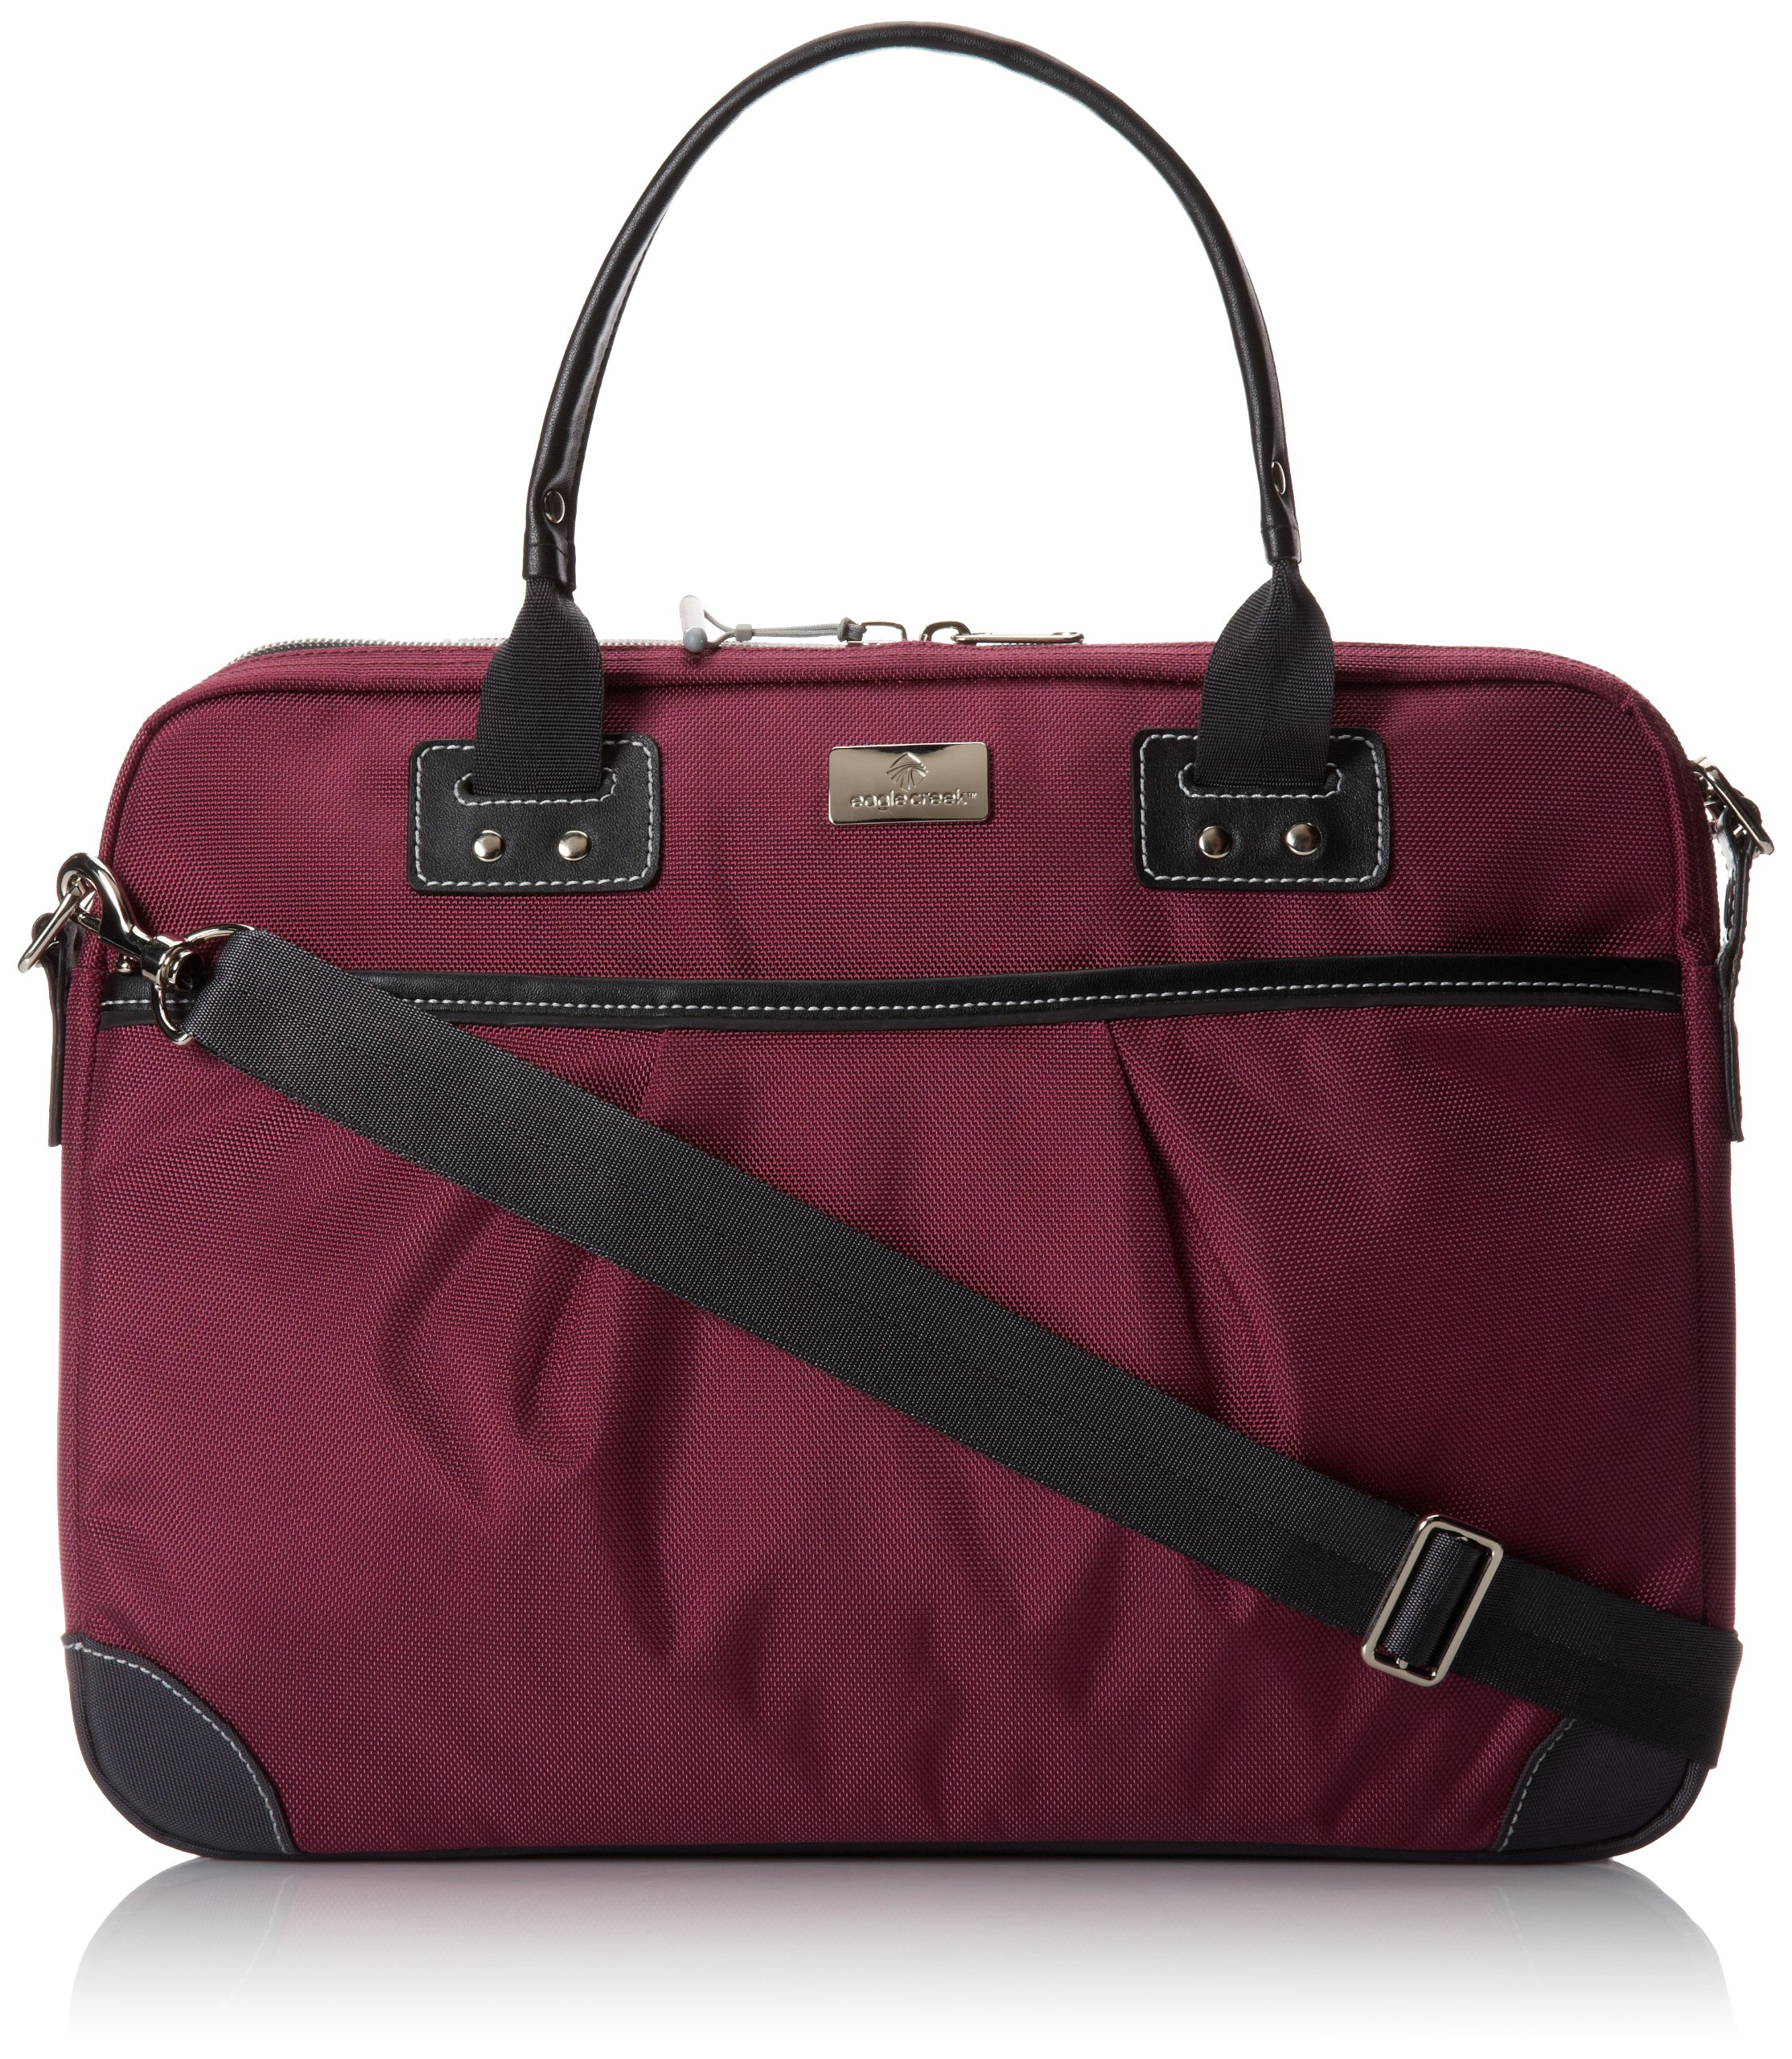 Eagle Creek Luggage Audine Laptop Briefcase, Berry, One Size